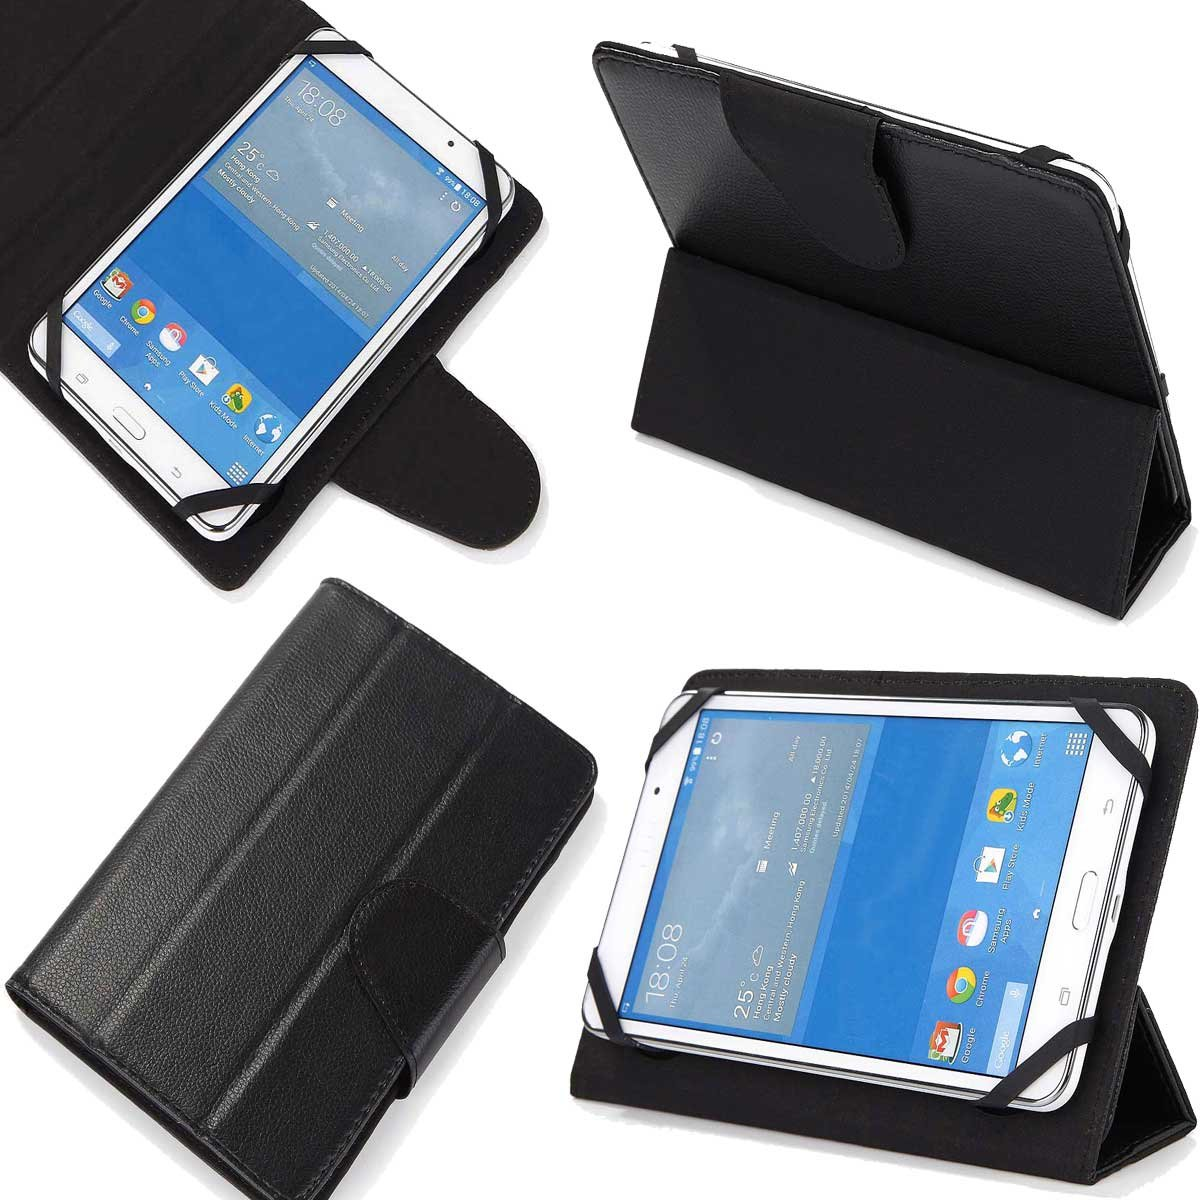 Universal 7 Inch All Models Tablet Pc Case New Design , Ultra Slim , Low Weight and Fashionable (Only 7 Inch) Fits Xo 7-inch Kids Tablet Xo-880 / Xo-780 new 3u ultra short computer case 380mm large panel big power supply ultra short 3u computer case server computer case